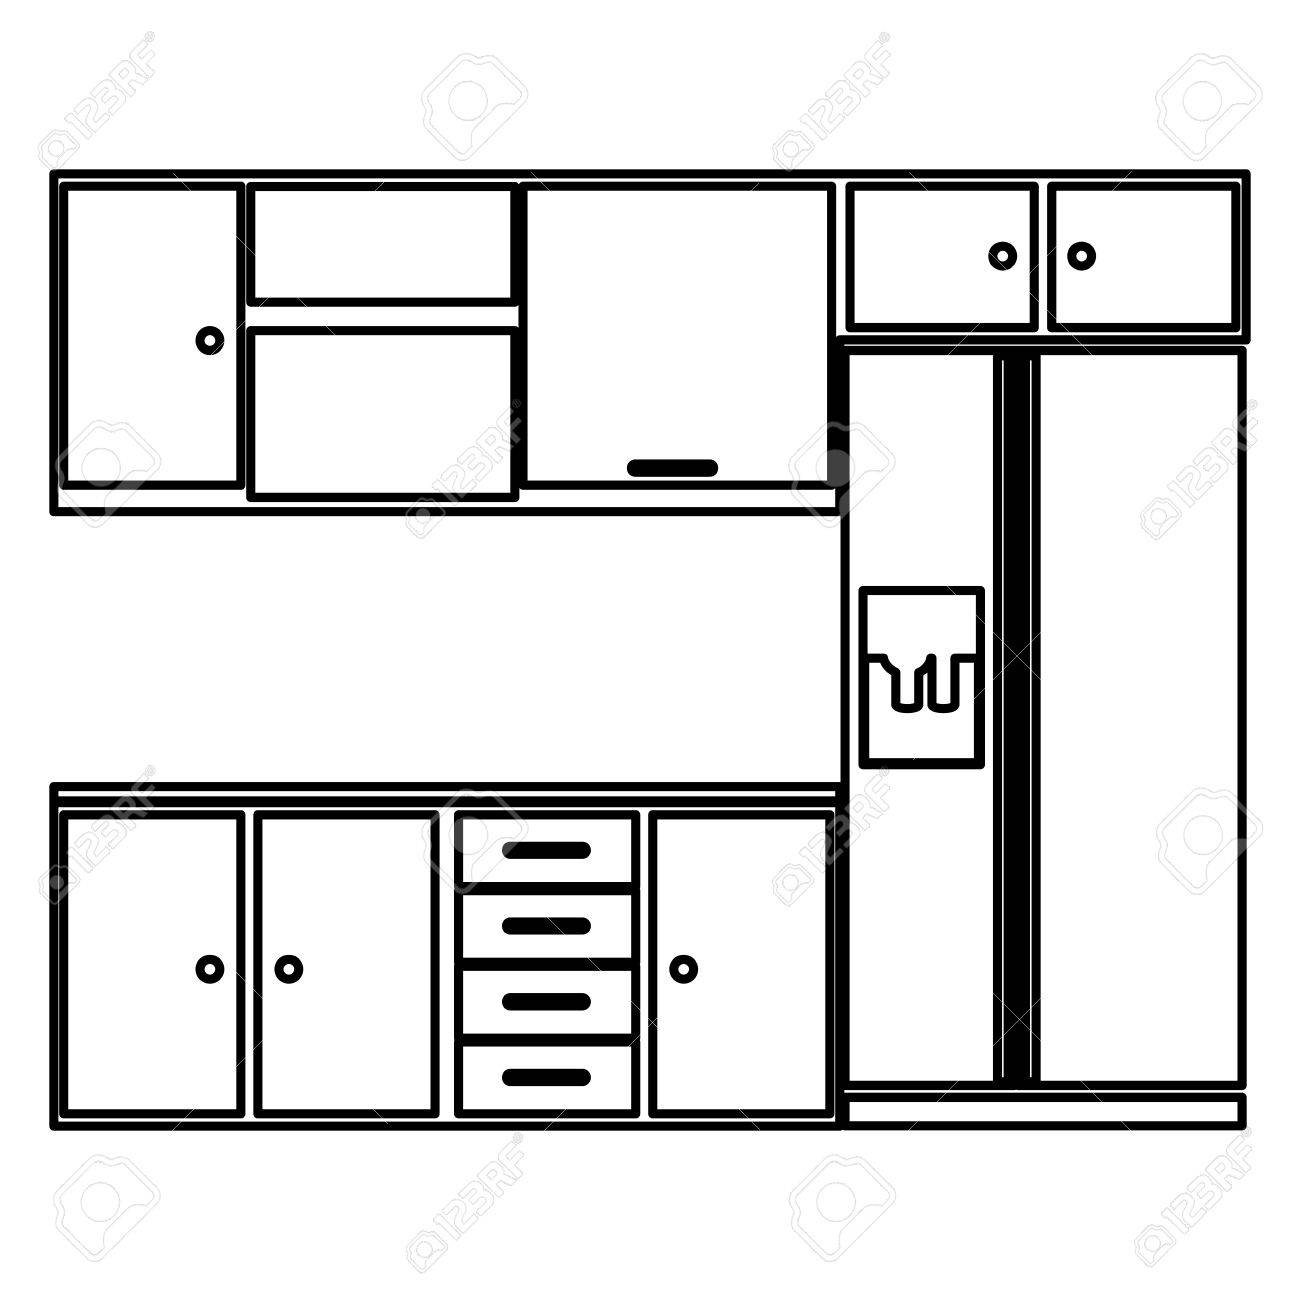 Sketch silhouette kitchen interior with cabinets and fridge vector...